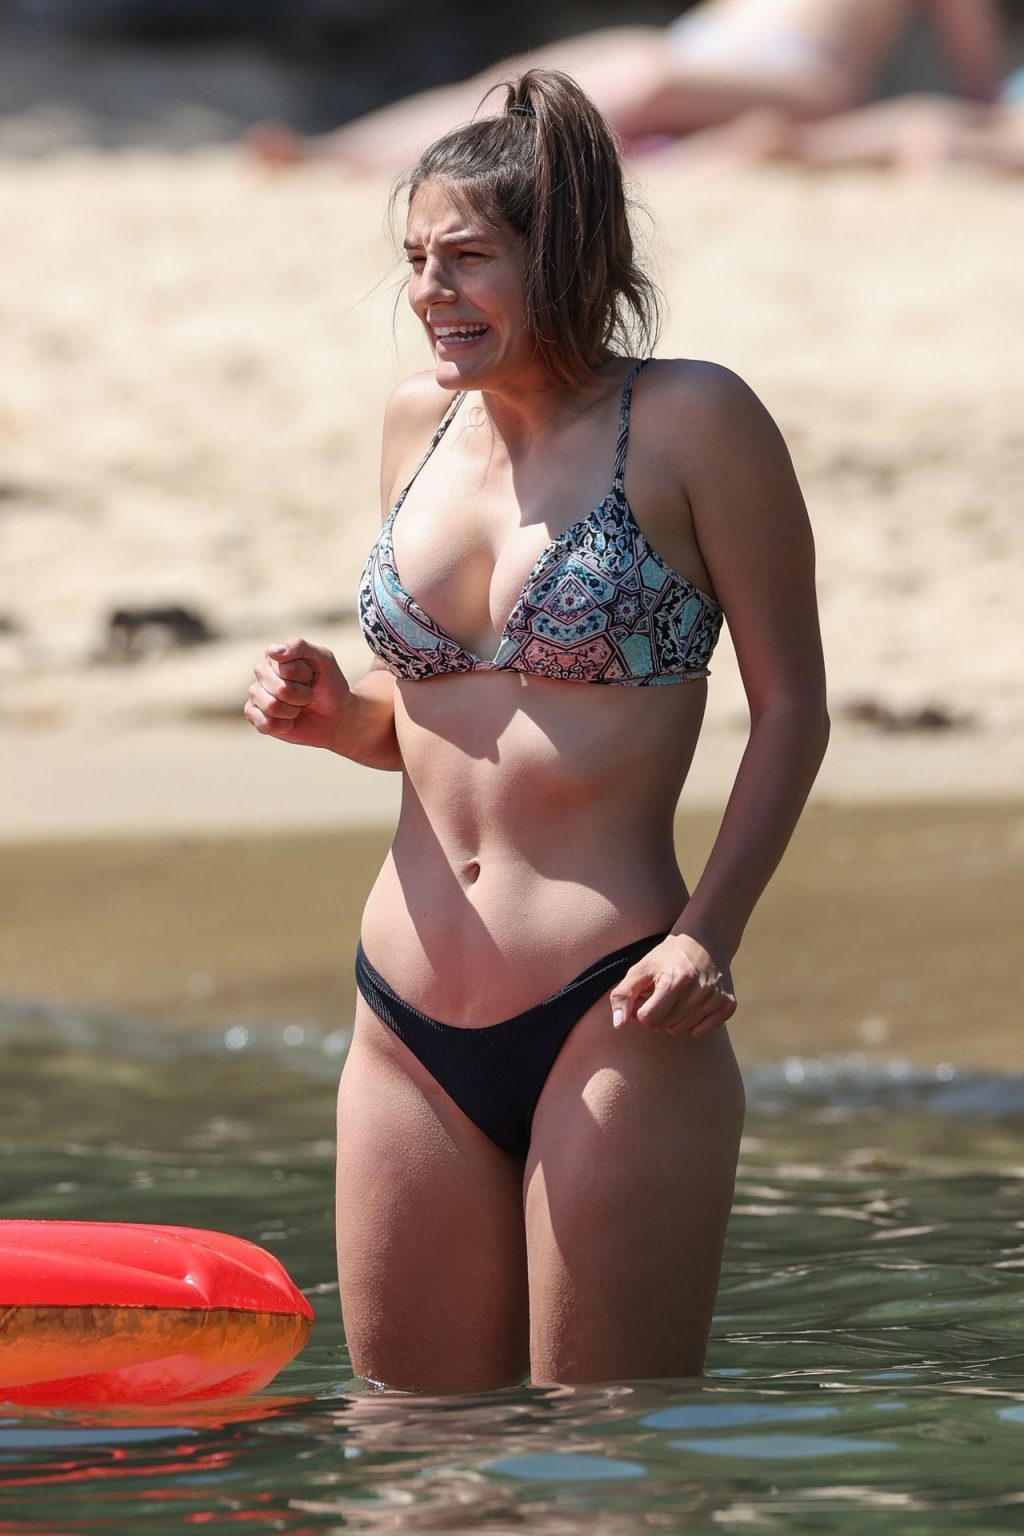 Marina Ivanovic Shows Off Her Bikini Body while Enjoying a Fun Day Out at the Beach in Sydney (90 Photos)